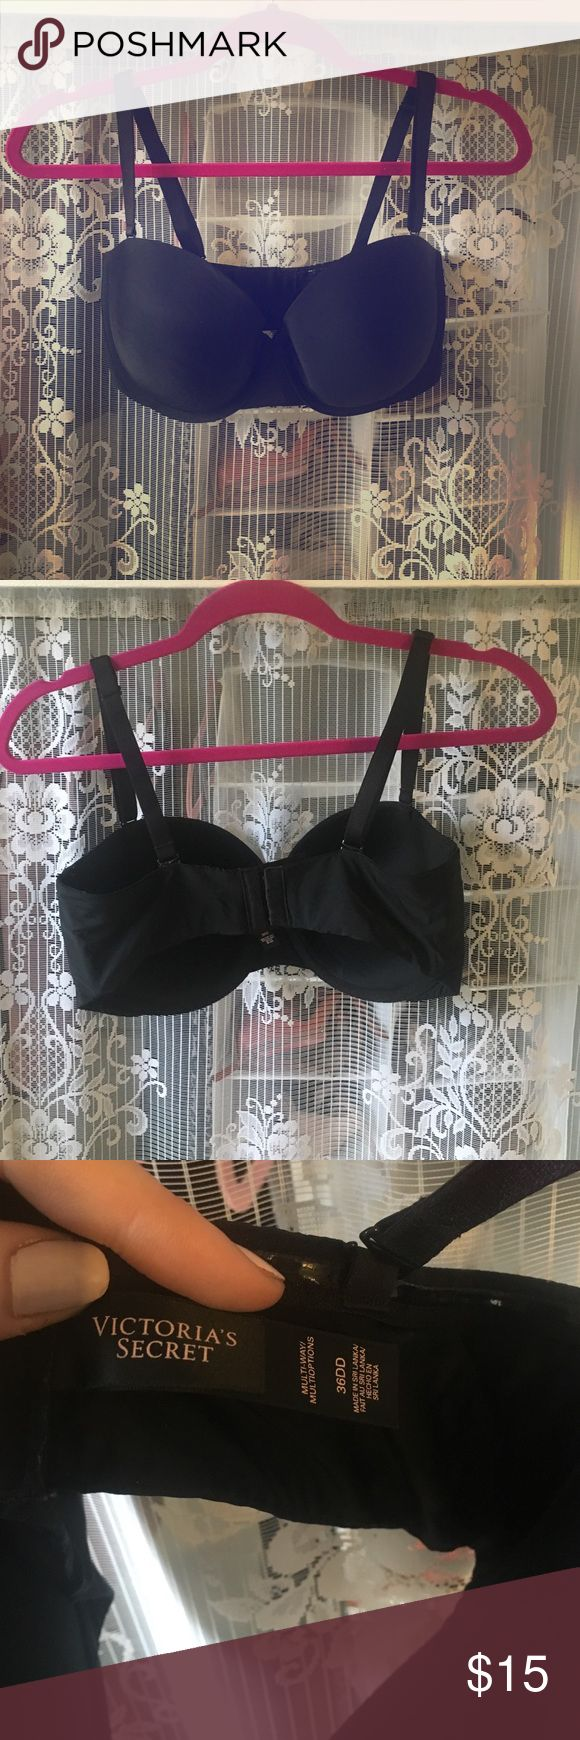 Victoria's Secret Strapless Bra This is a closet essential from Victoria's Secret. It can be worn strapless and has piping to help it stay up. It also has the straps for more versatility! EUC. Size 36DD. Victoria's Secret Intimates & Sleepwear Bras